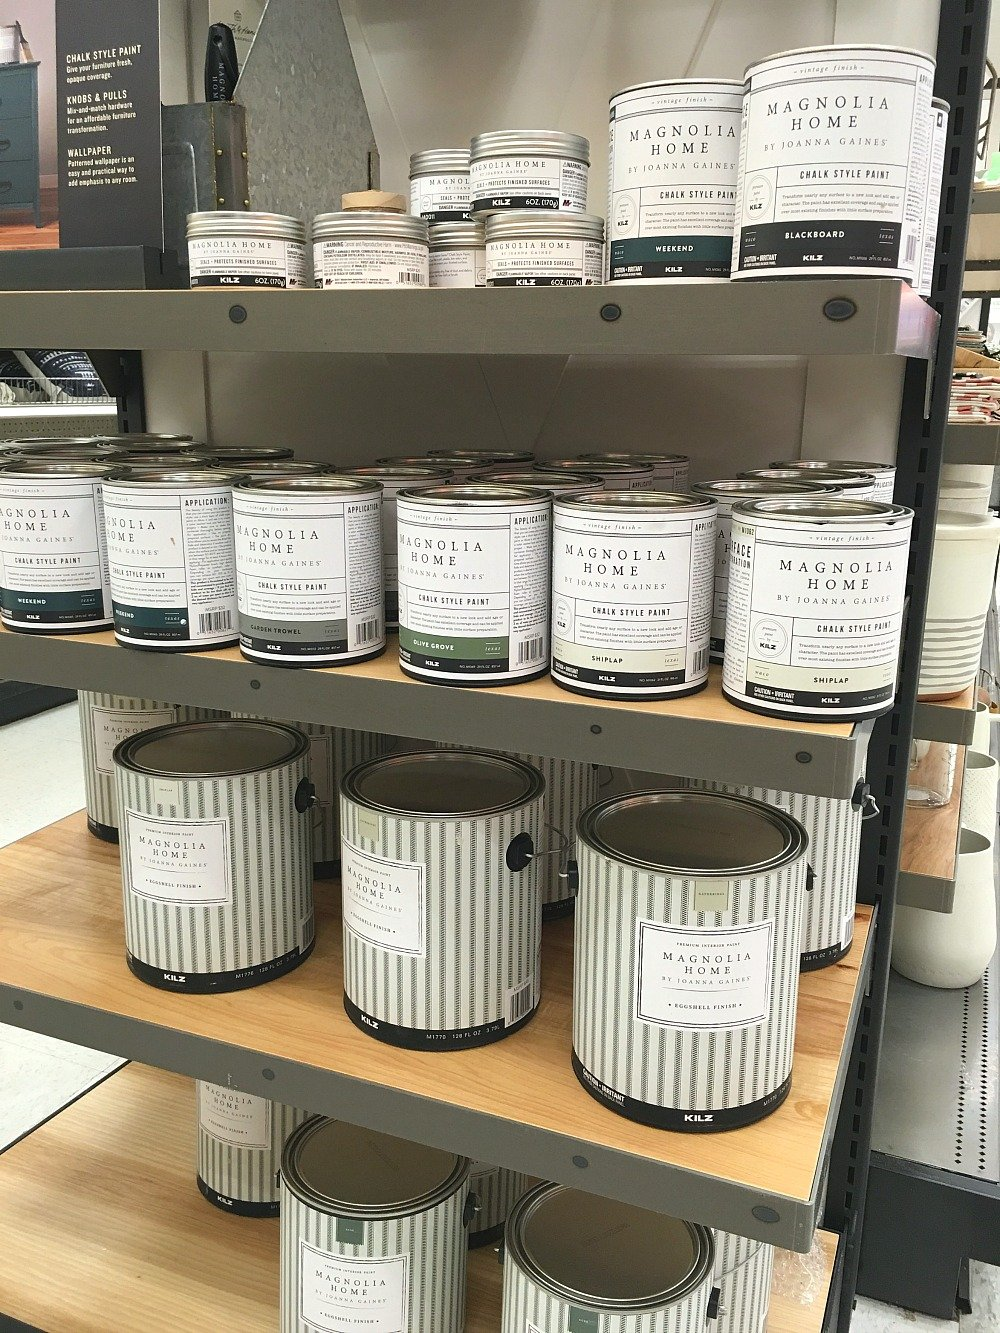 Joanna Gaines' Paint Line at Target